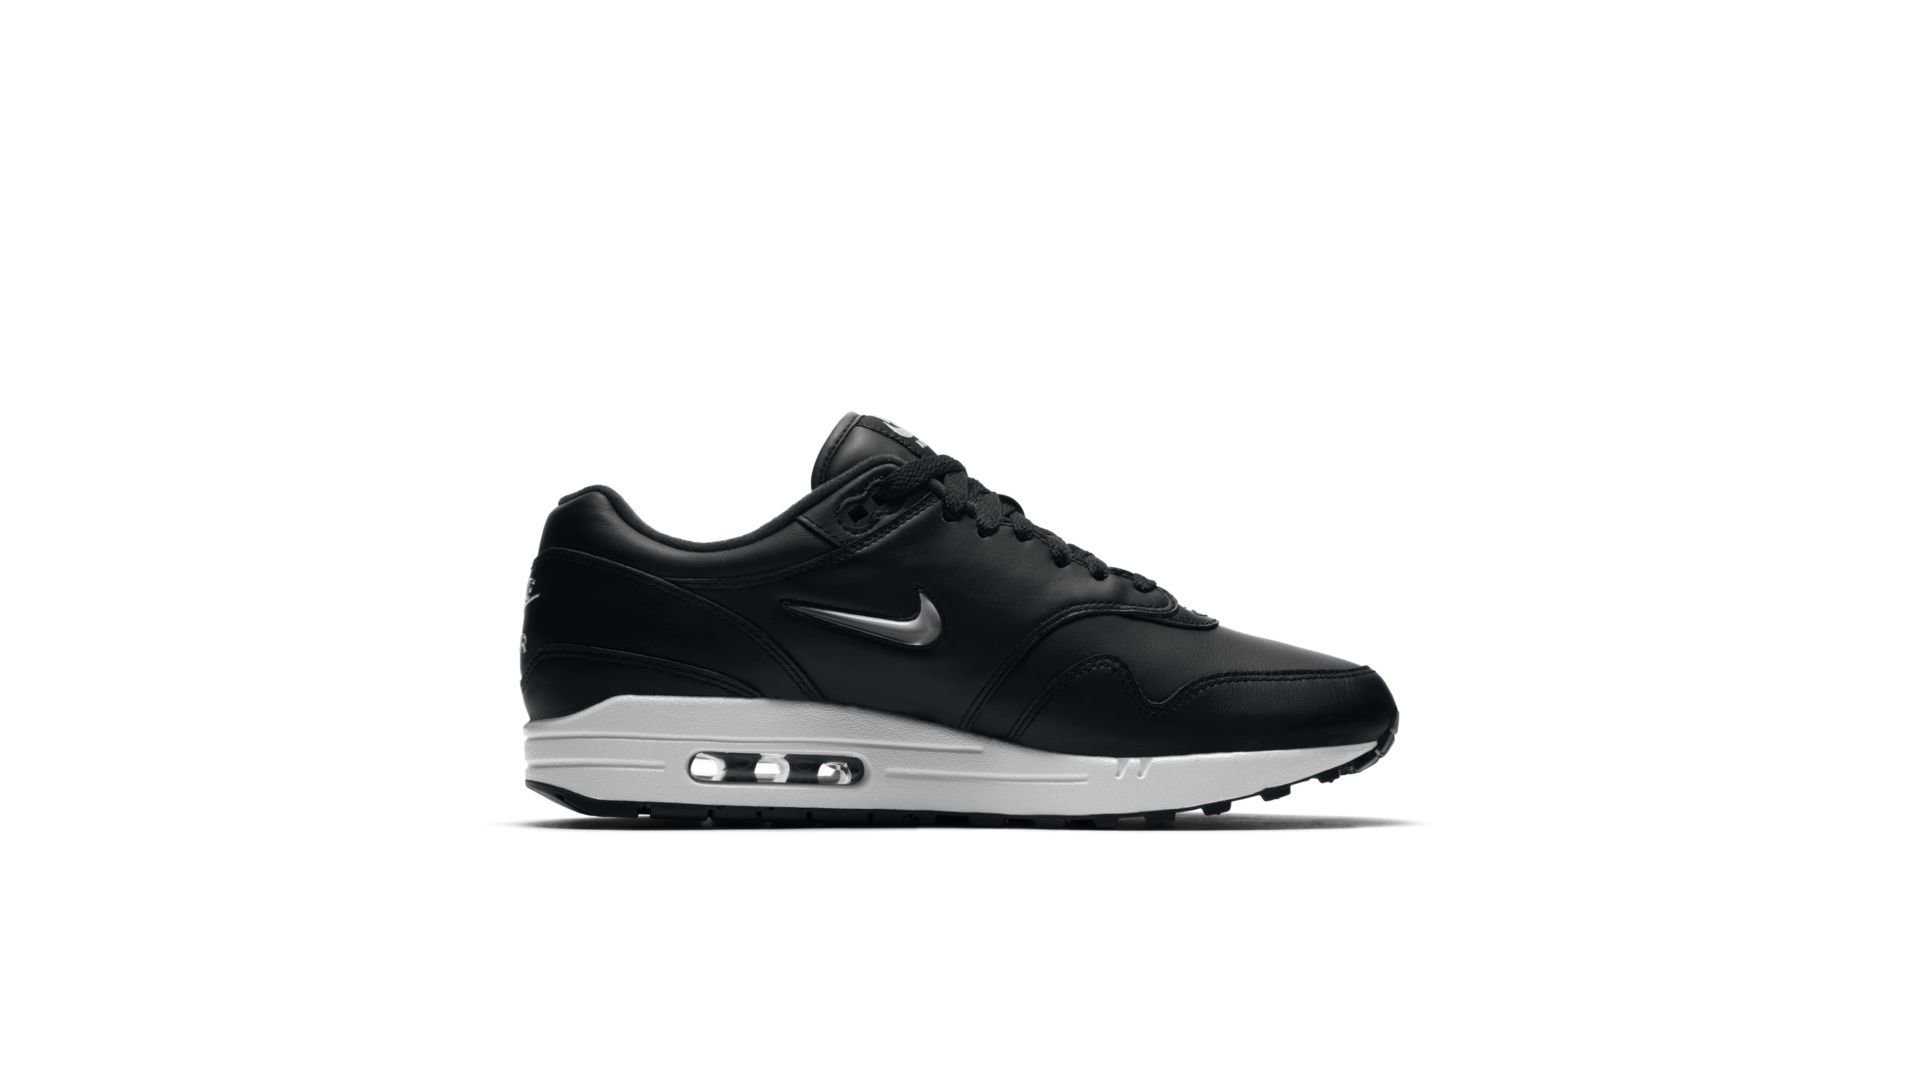 Nike Air Max 1 Premium SC Jewel Black Metallic Silver (918354-001)